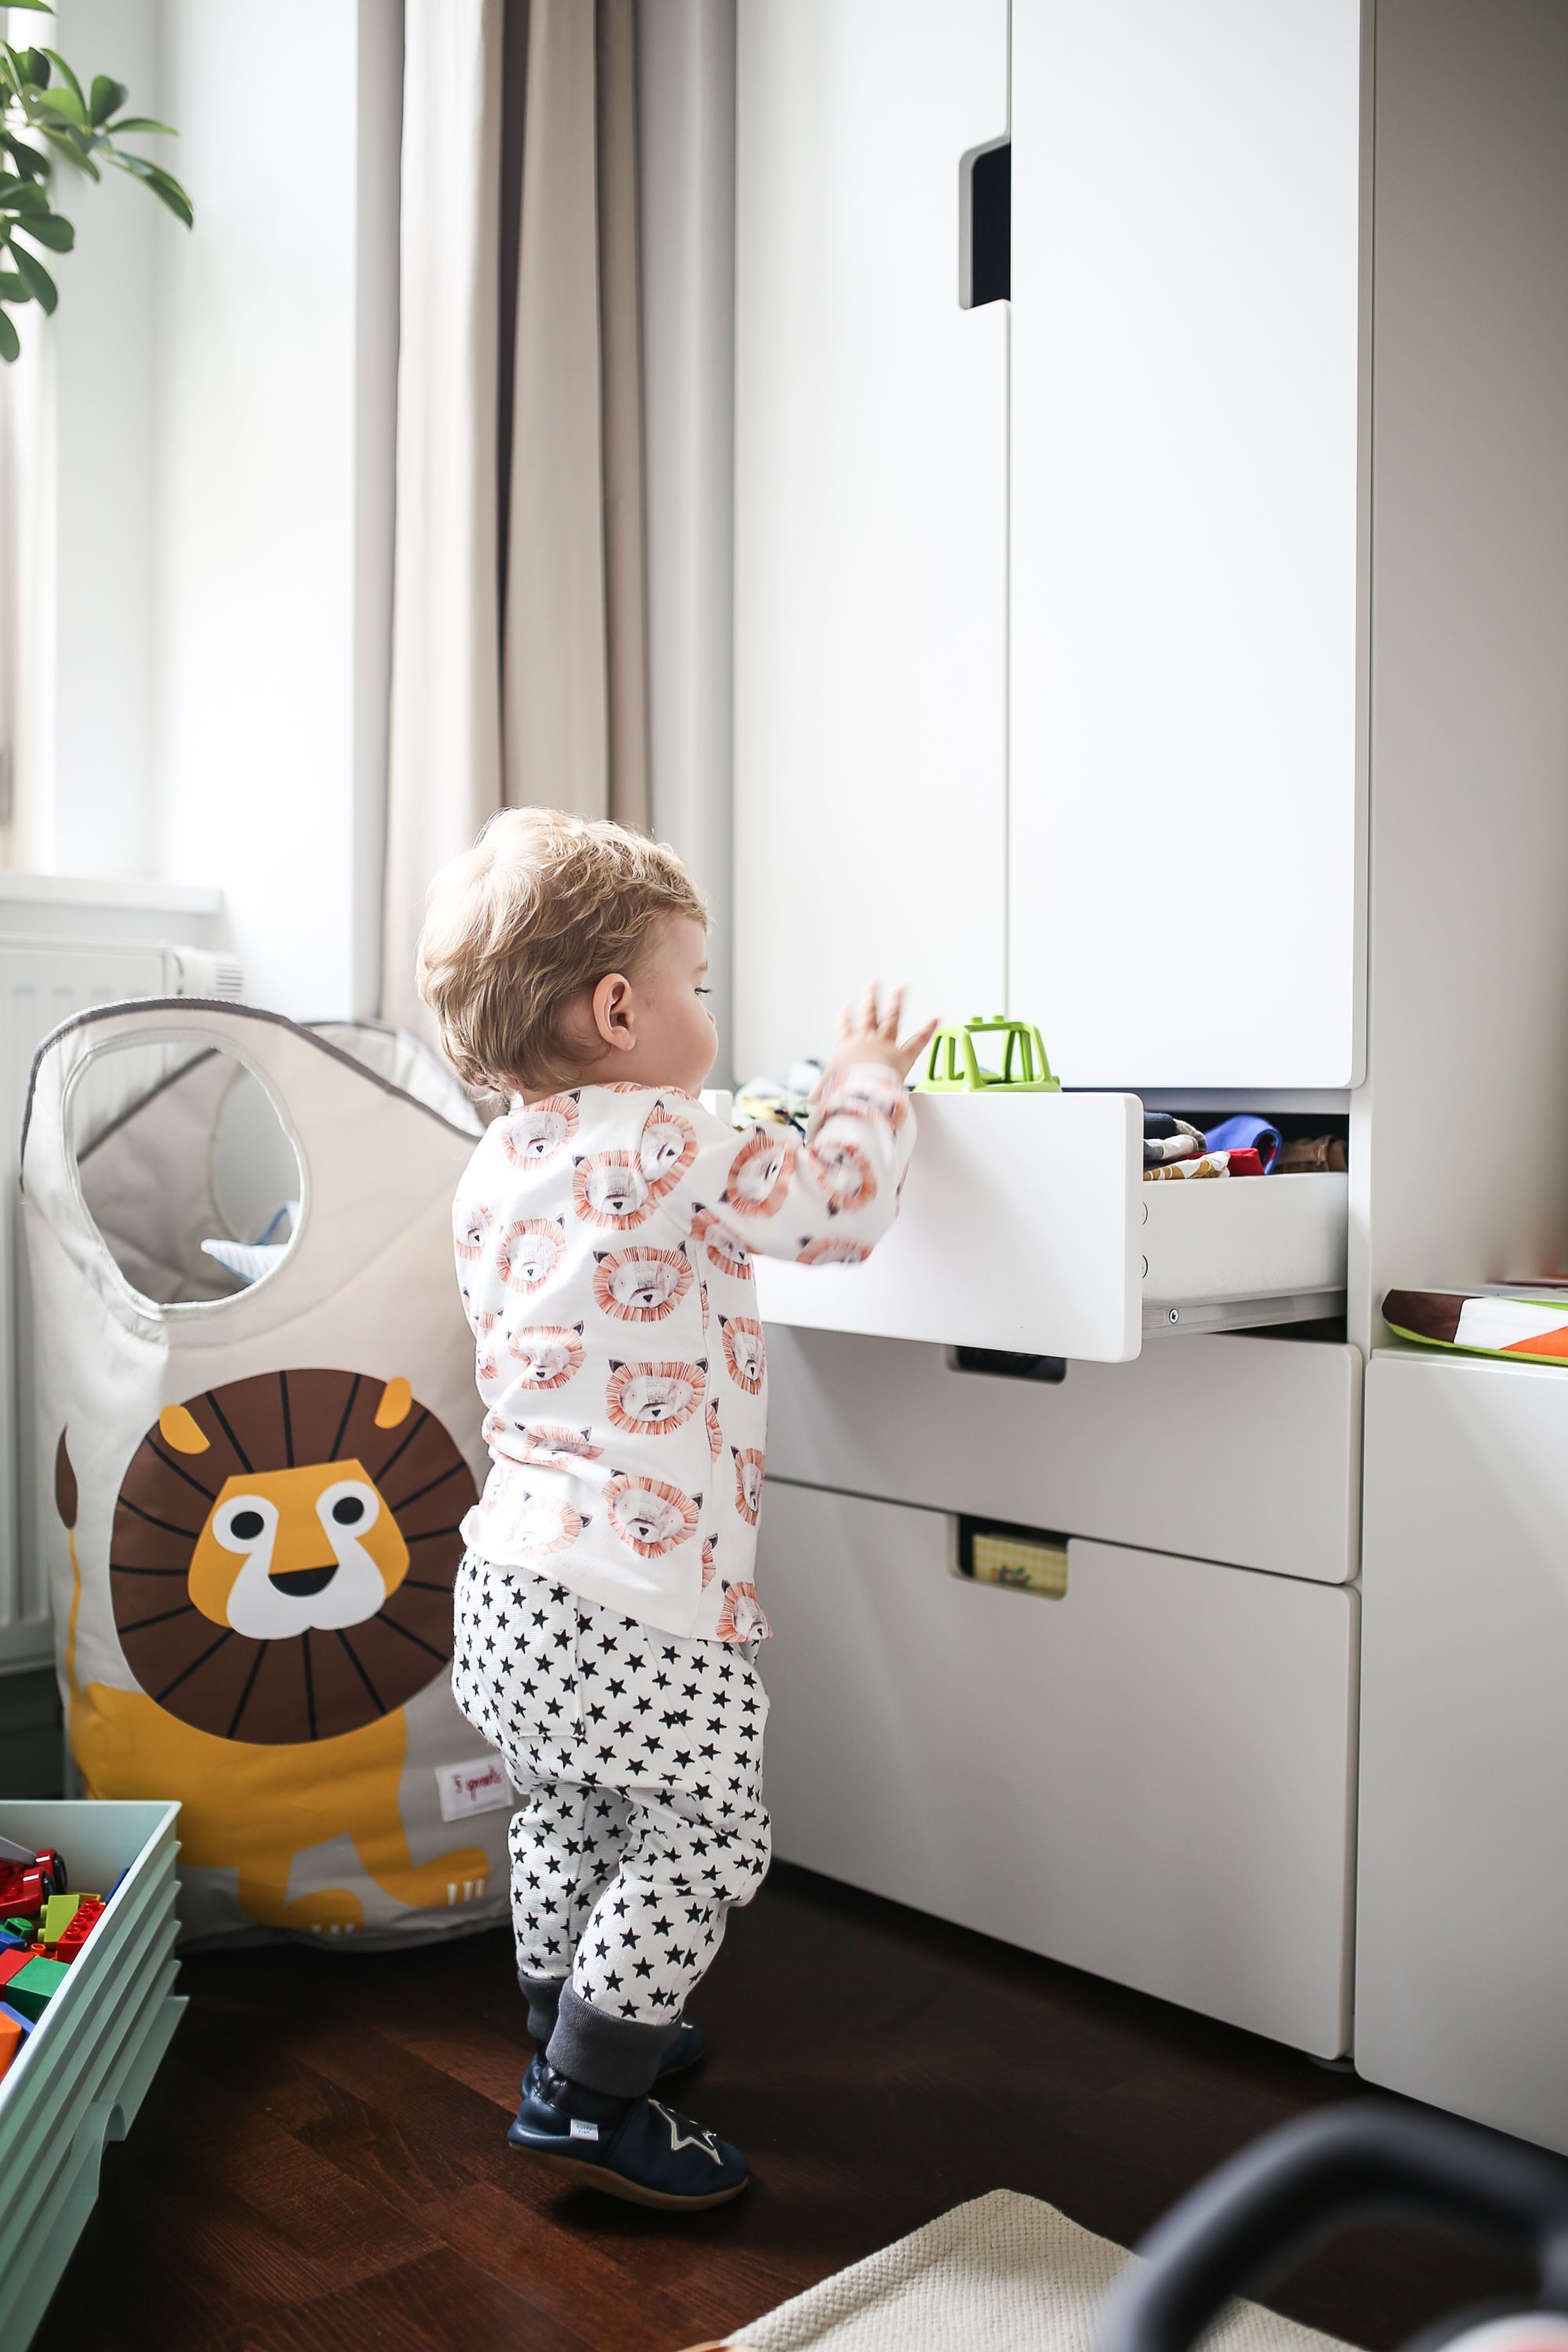 Babyzimmer ikea stuva  Friedrichs neues Kinderzimmer | Shared bedrooms, Bedrooms and Room